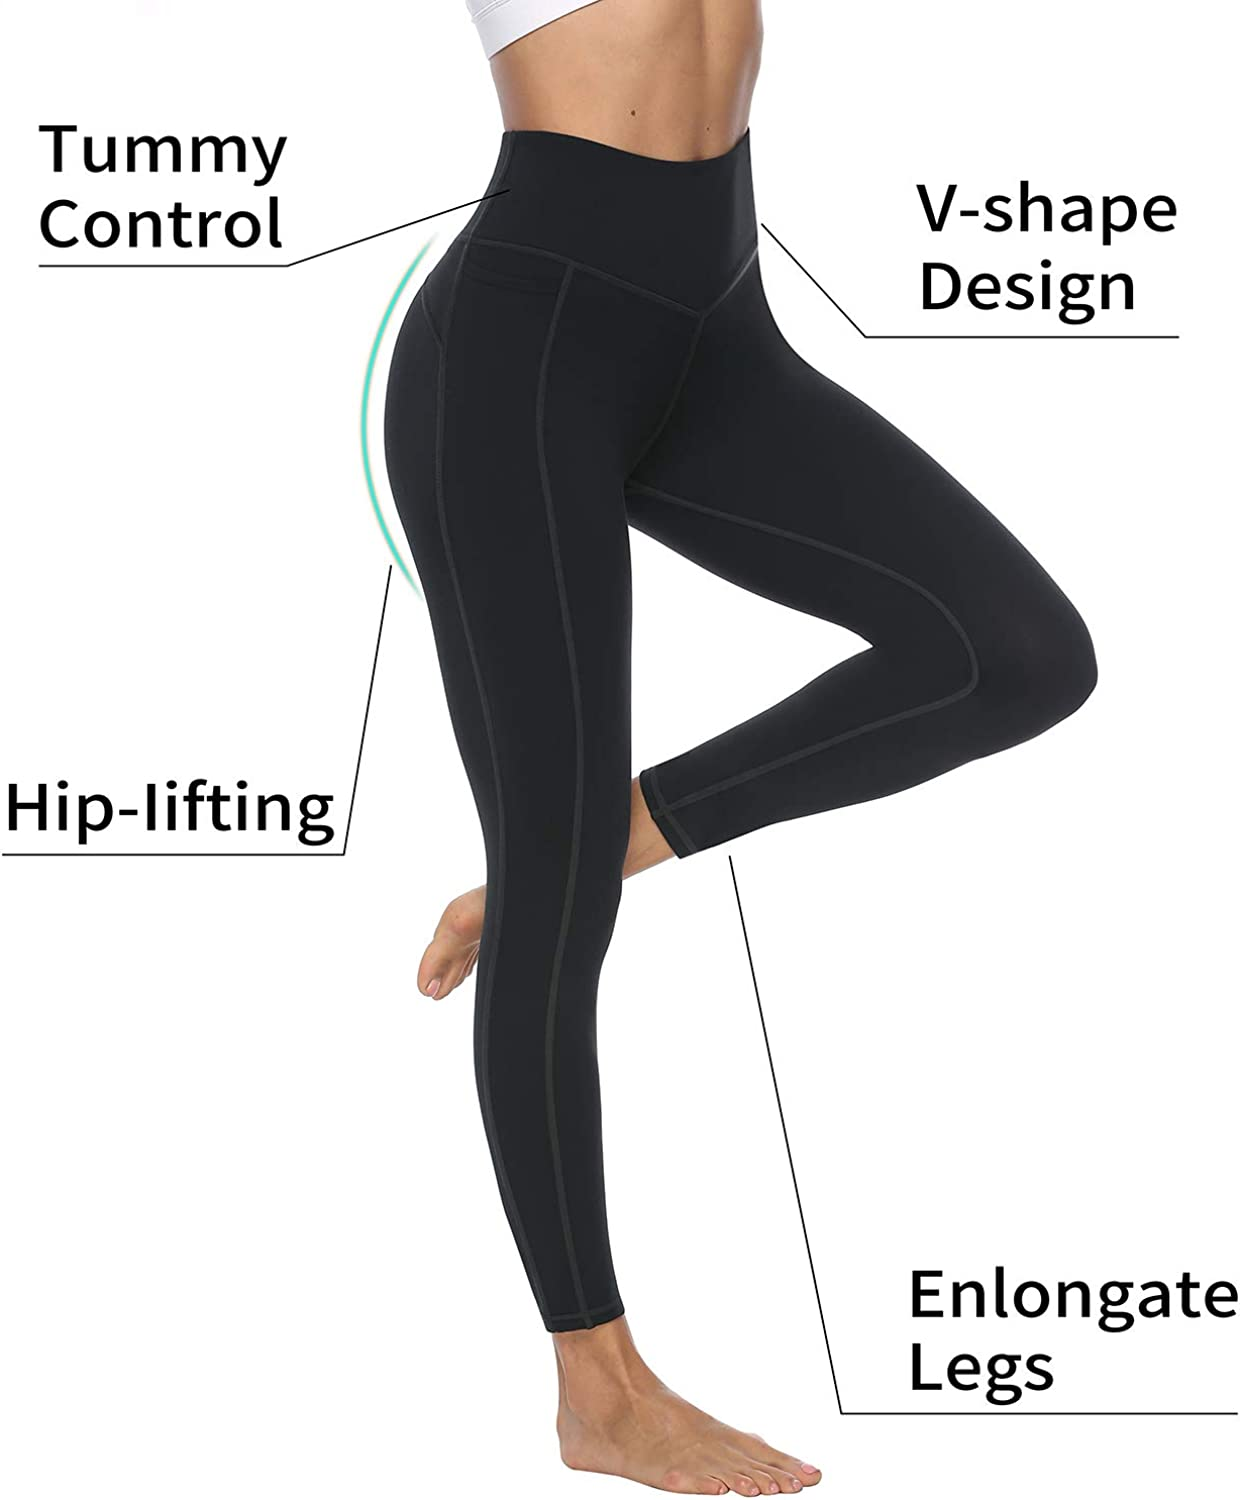 VOEONS/Yoga/Pants/for/Women/High/Waisted/Tummy/Control/Spandex/Exercise/Athletic/Leggings/with/Pockets/